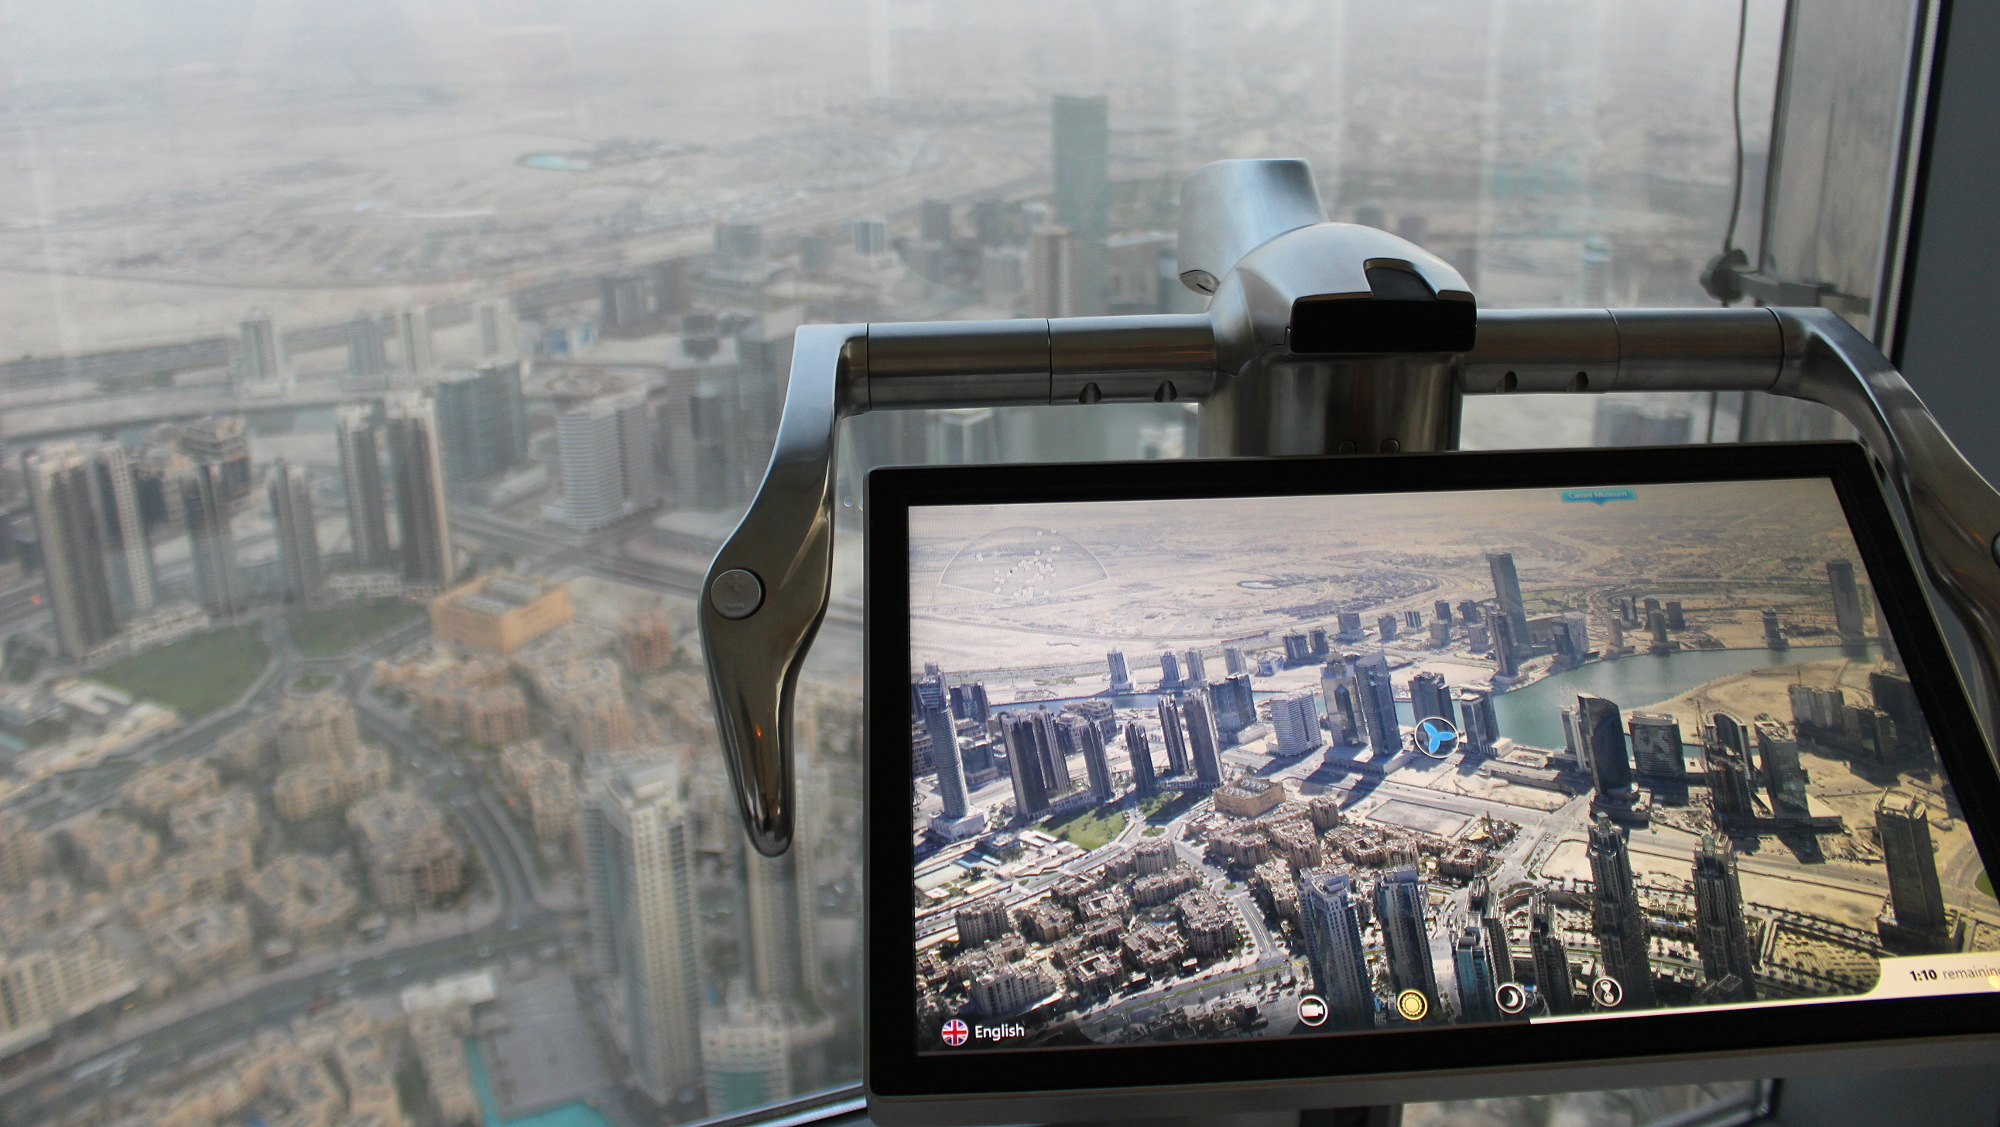 Burj Khalifa VR screen or digital binoculars showing Dubai on a clear day.